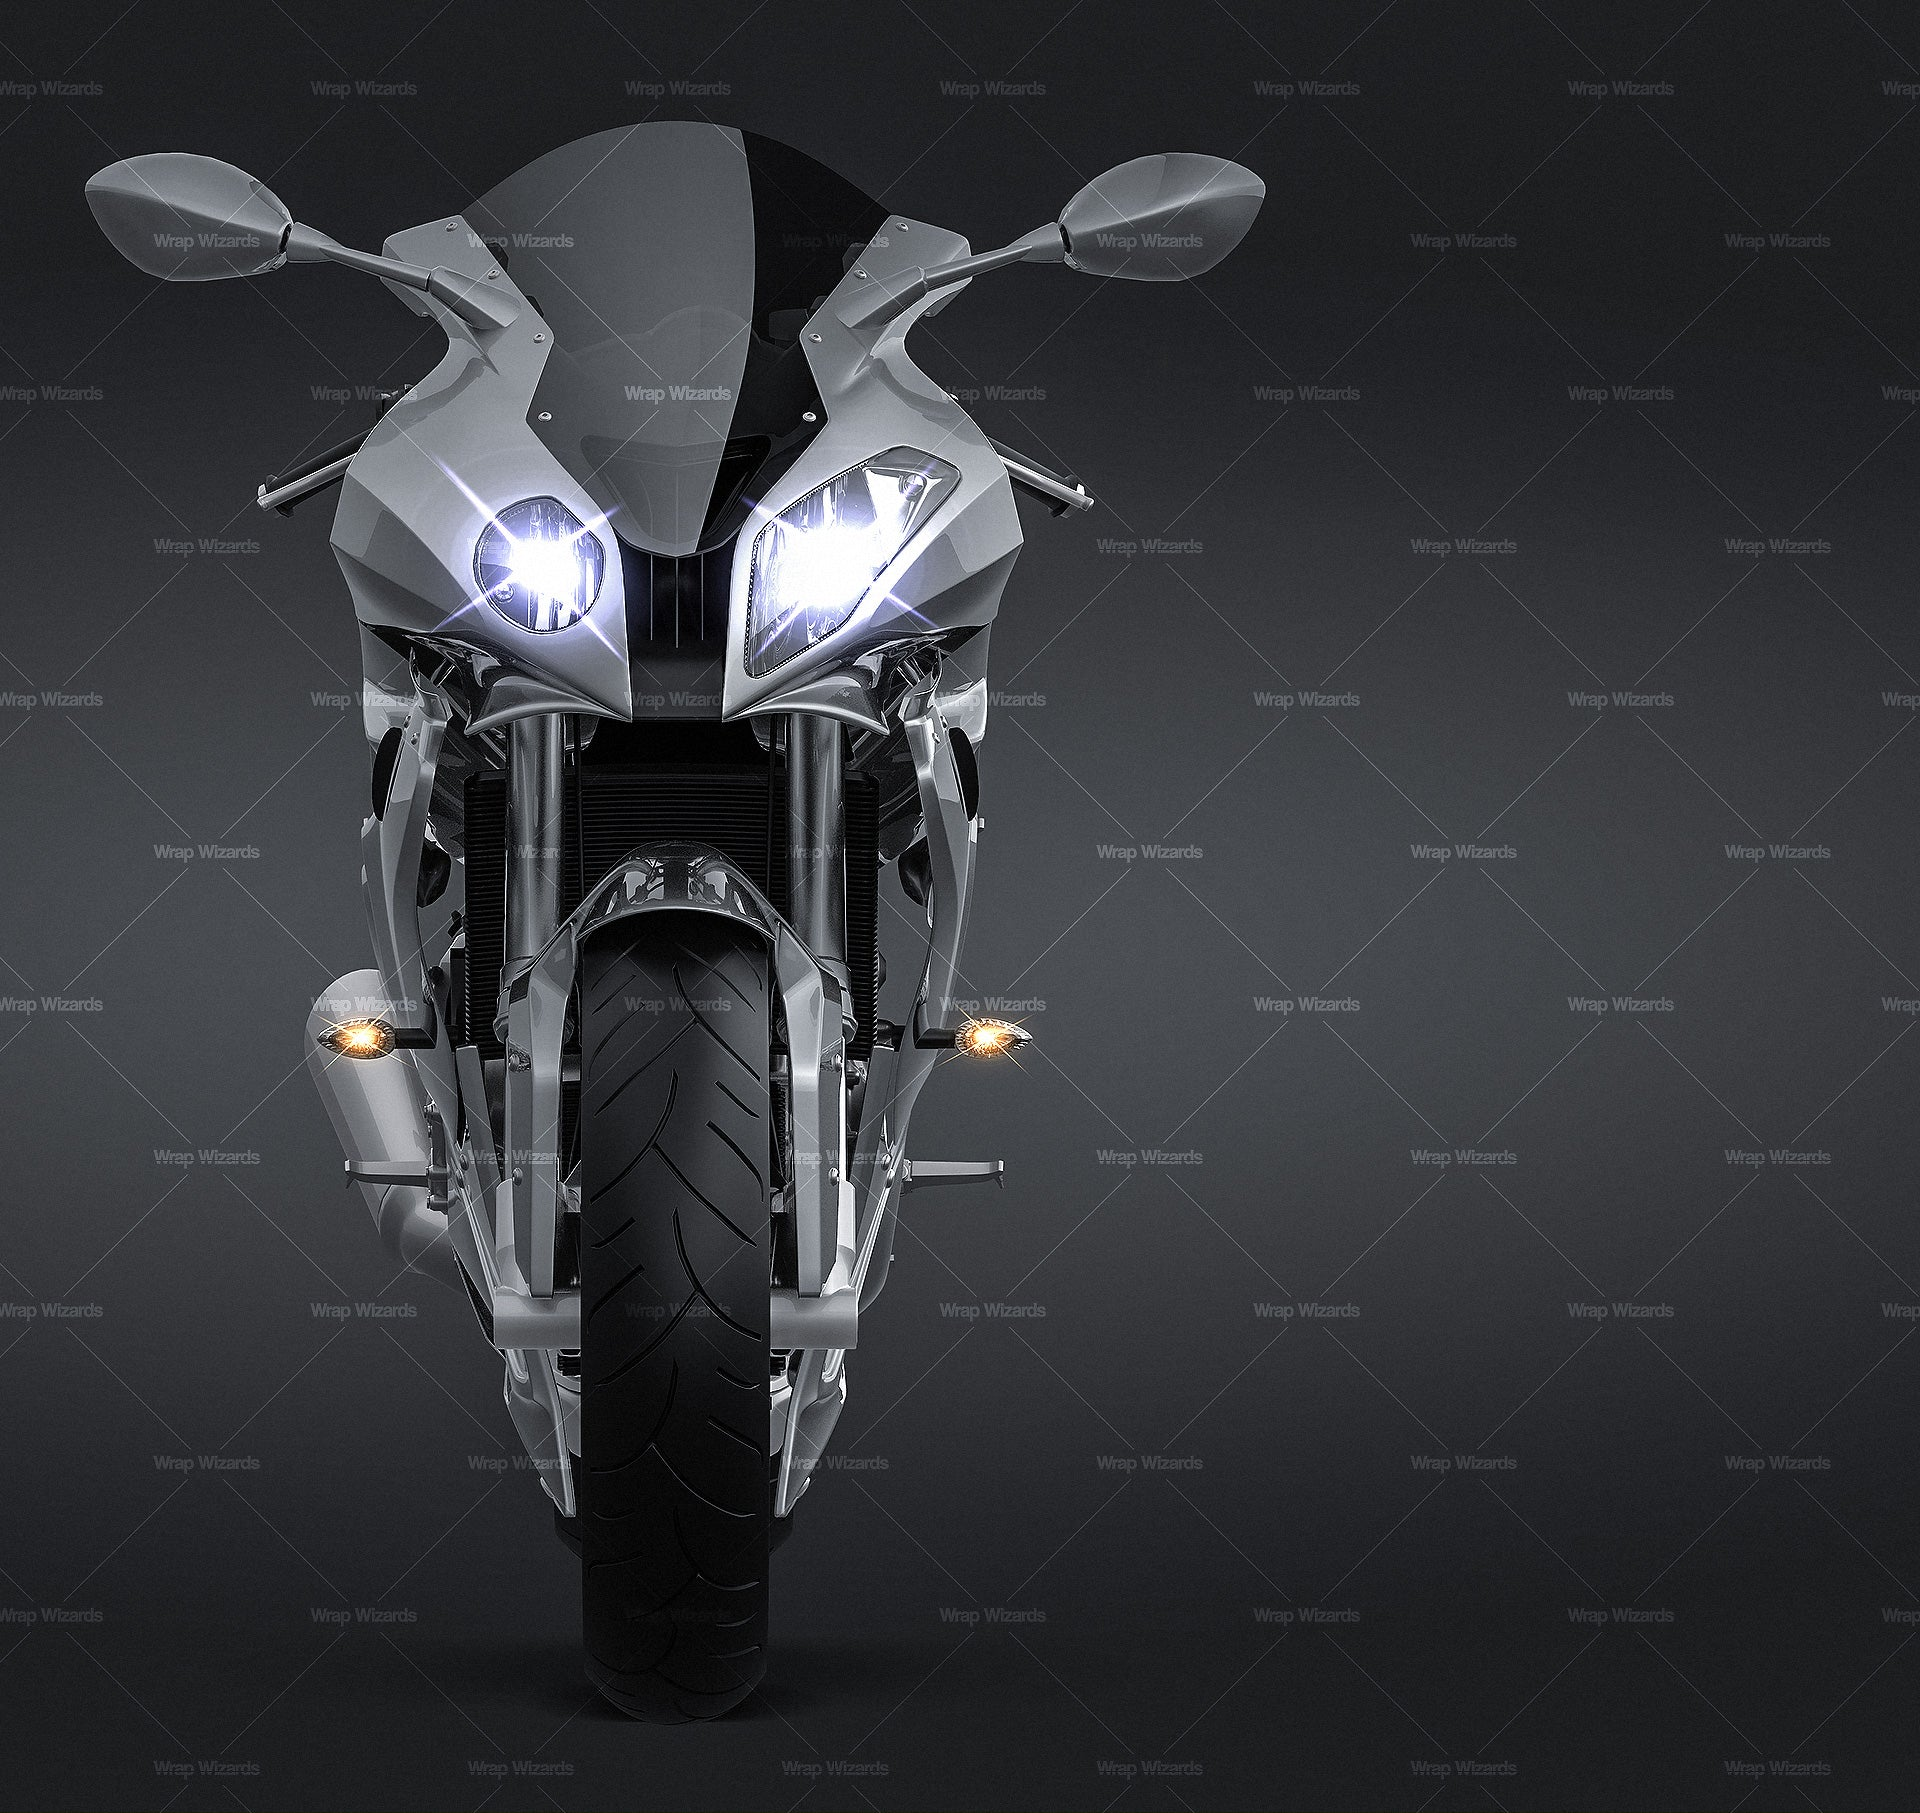 BMW S1000RR 2011 all sides Car Mockup Template.psd